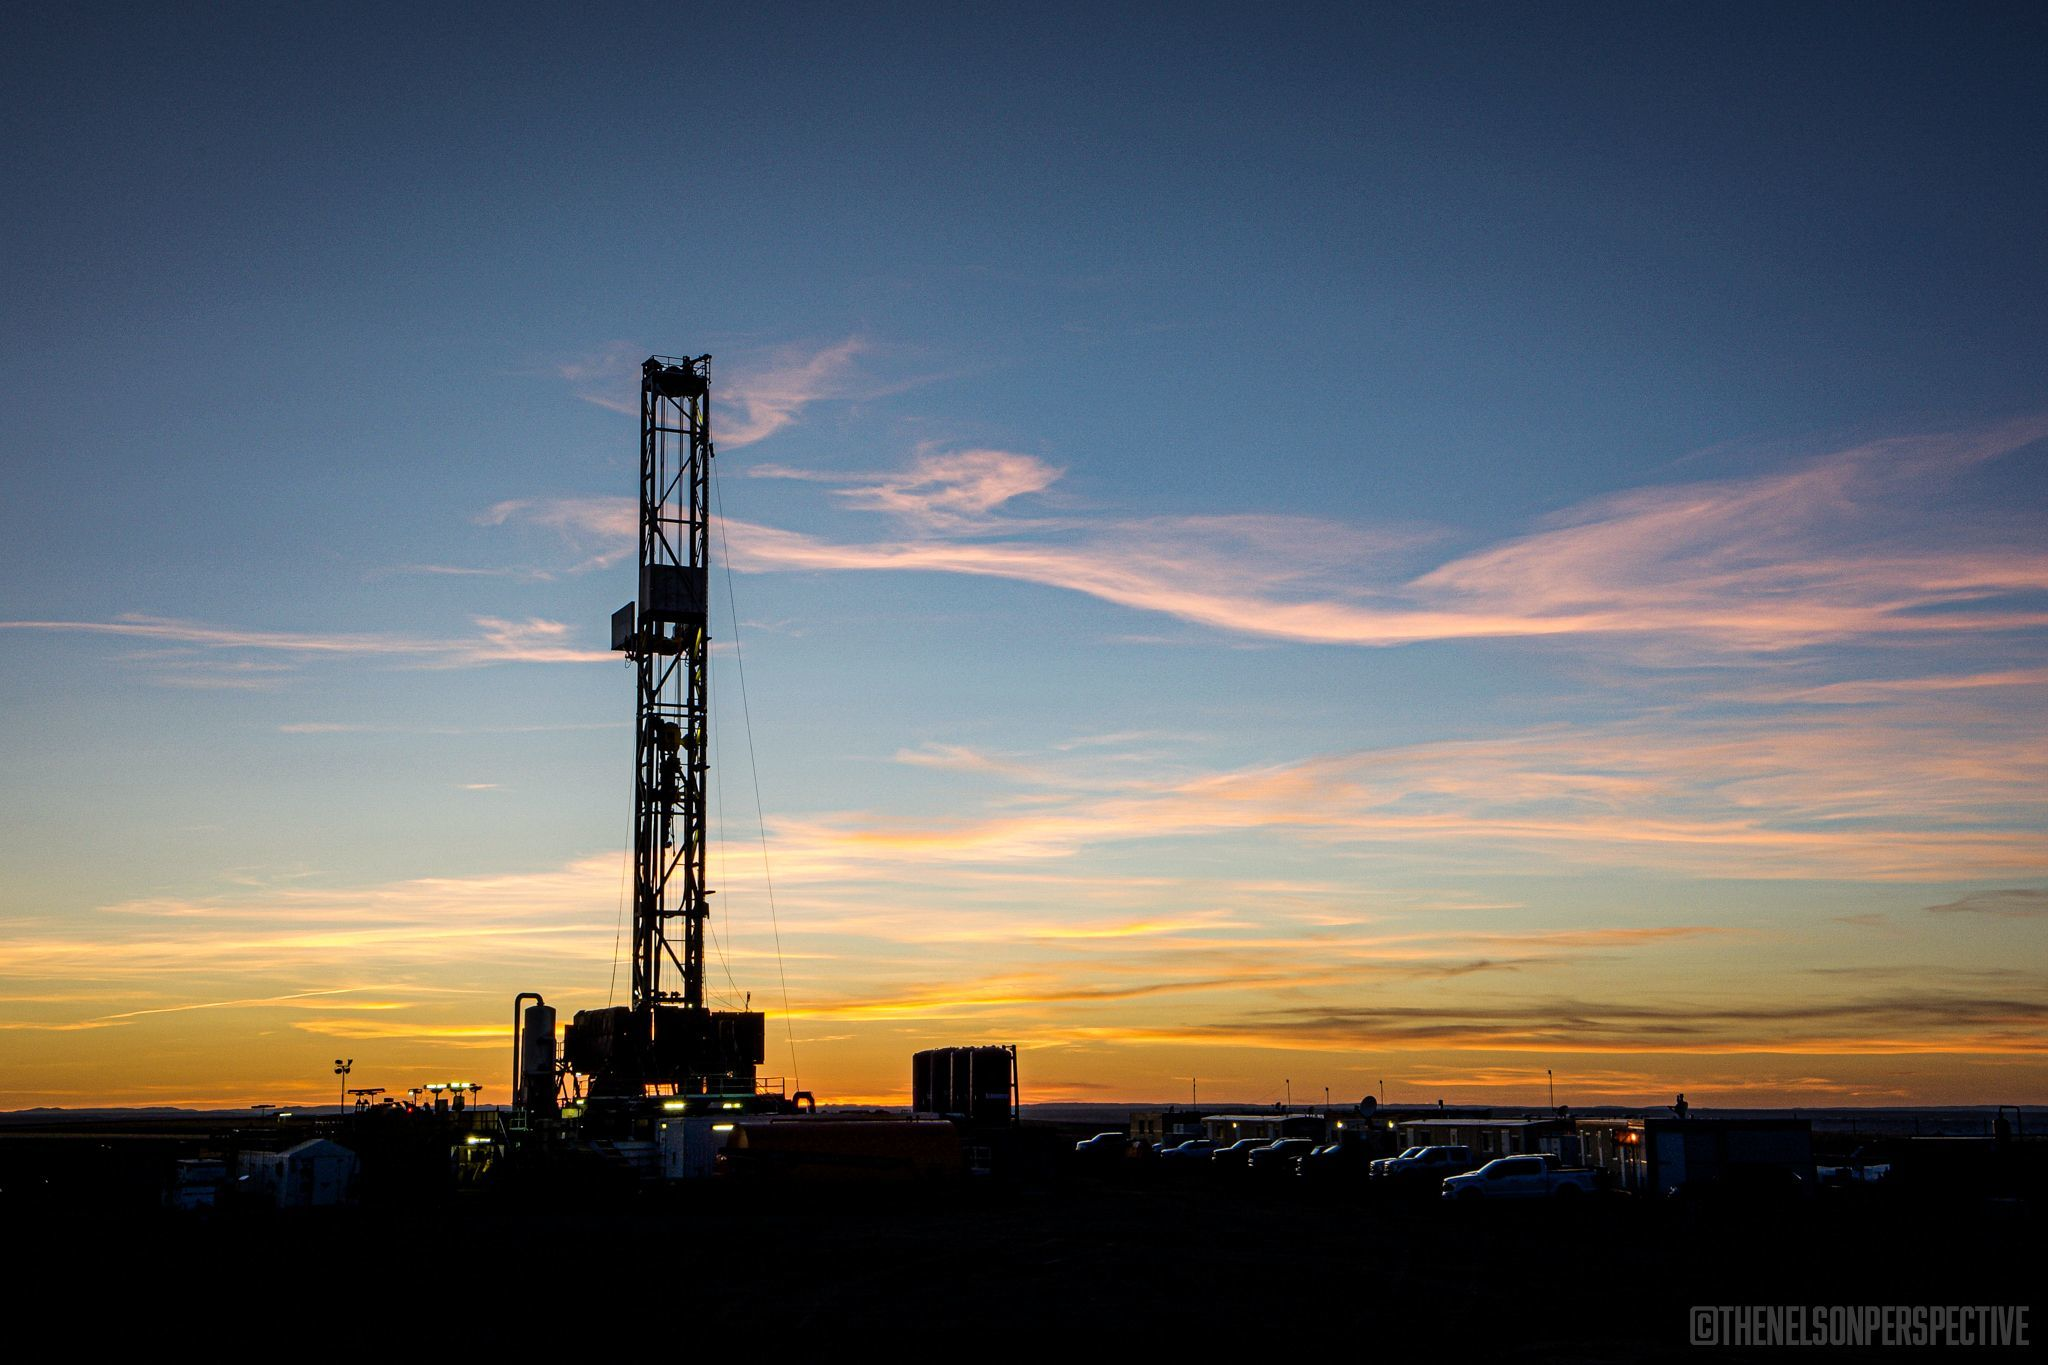 Oil rig with sunset in the background.